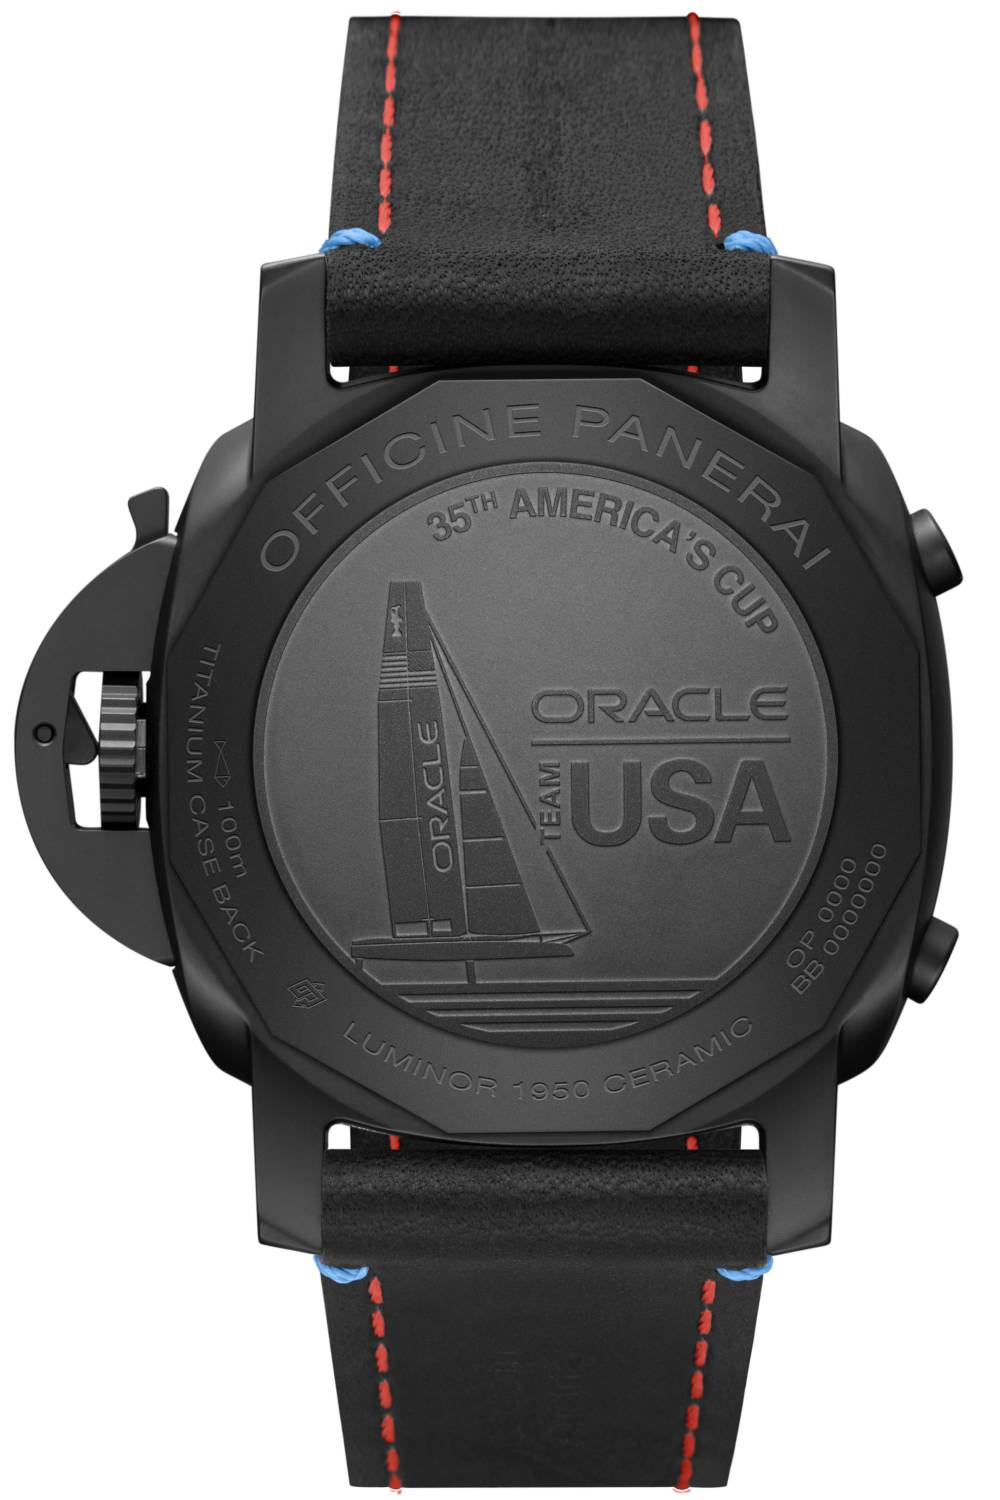 Panerai-Oracle-Team-USA-Americas-Cup-Pam00725-2.jpg